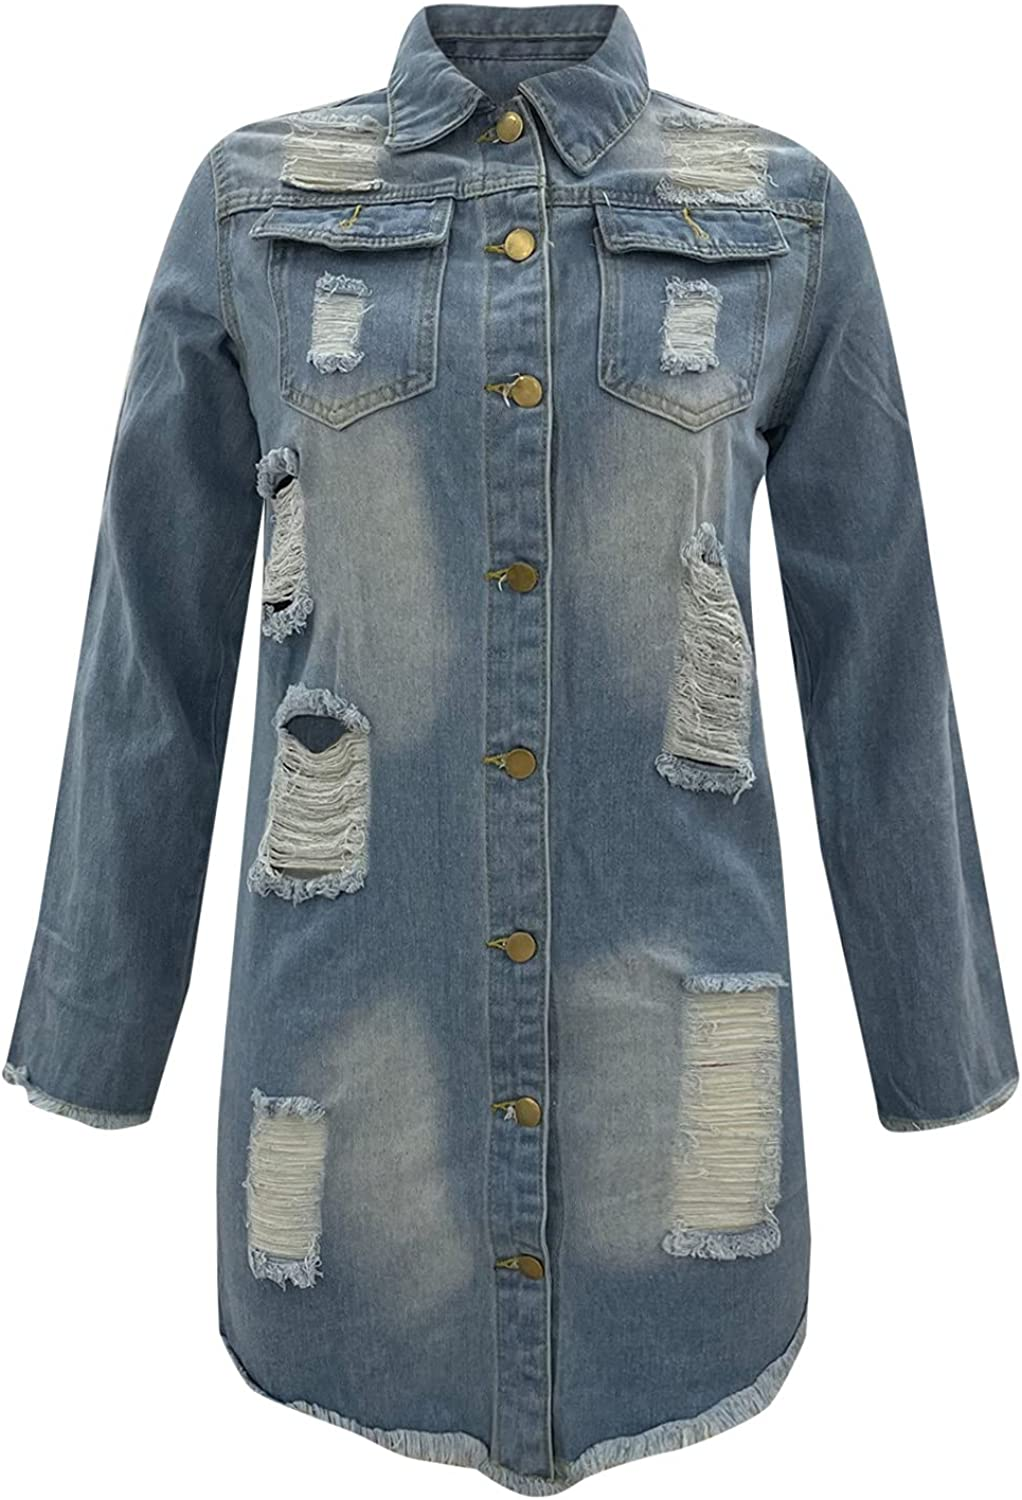 Lee-po-po Womens Classic Long Jean Jacket Plus Size Loose Long Sleeve Button Down Denim Jacket Trench Coat